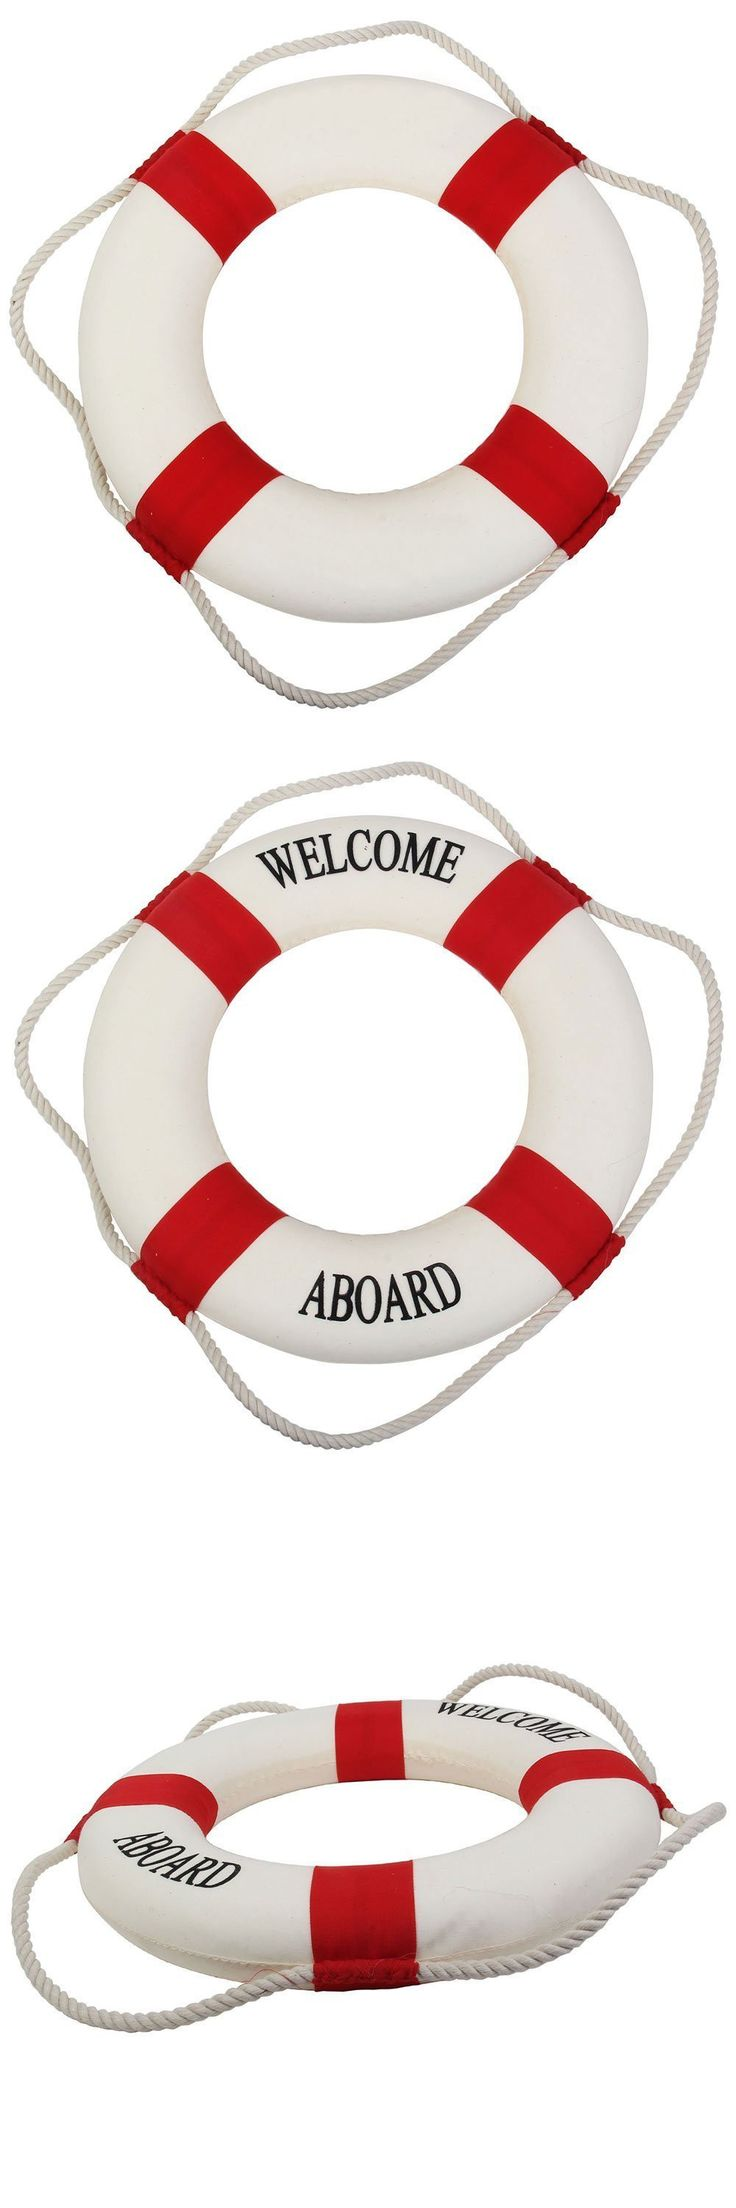 WSFS Hot Decorative Welcome Aboard Nautical Lifebuoy Ring Wall Hanging Home Decoration (Red, 25cm) $2.72